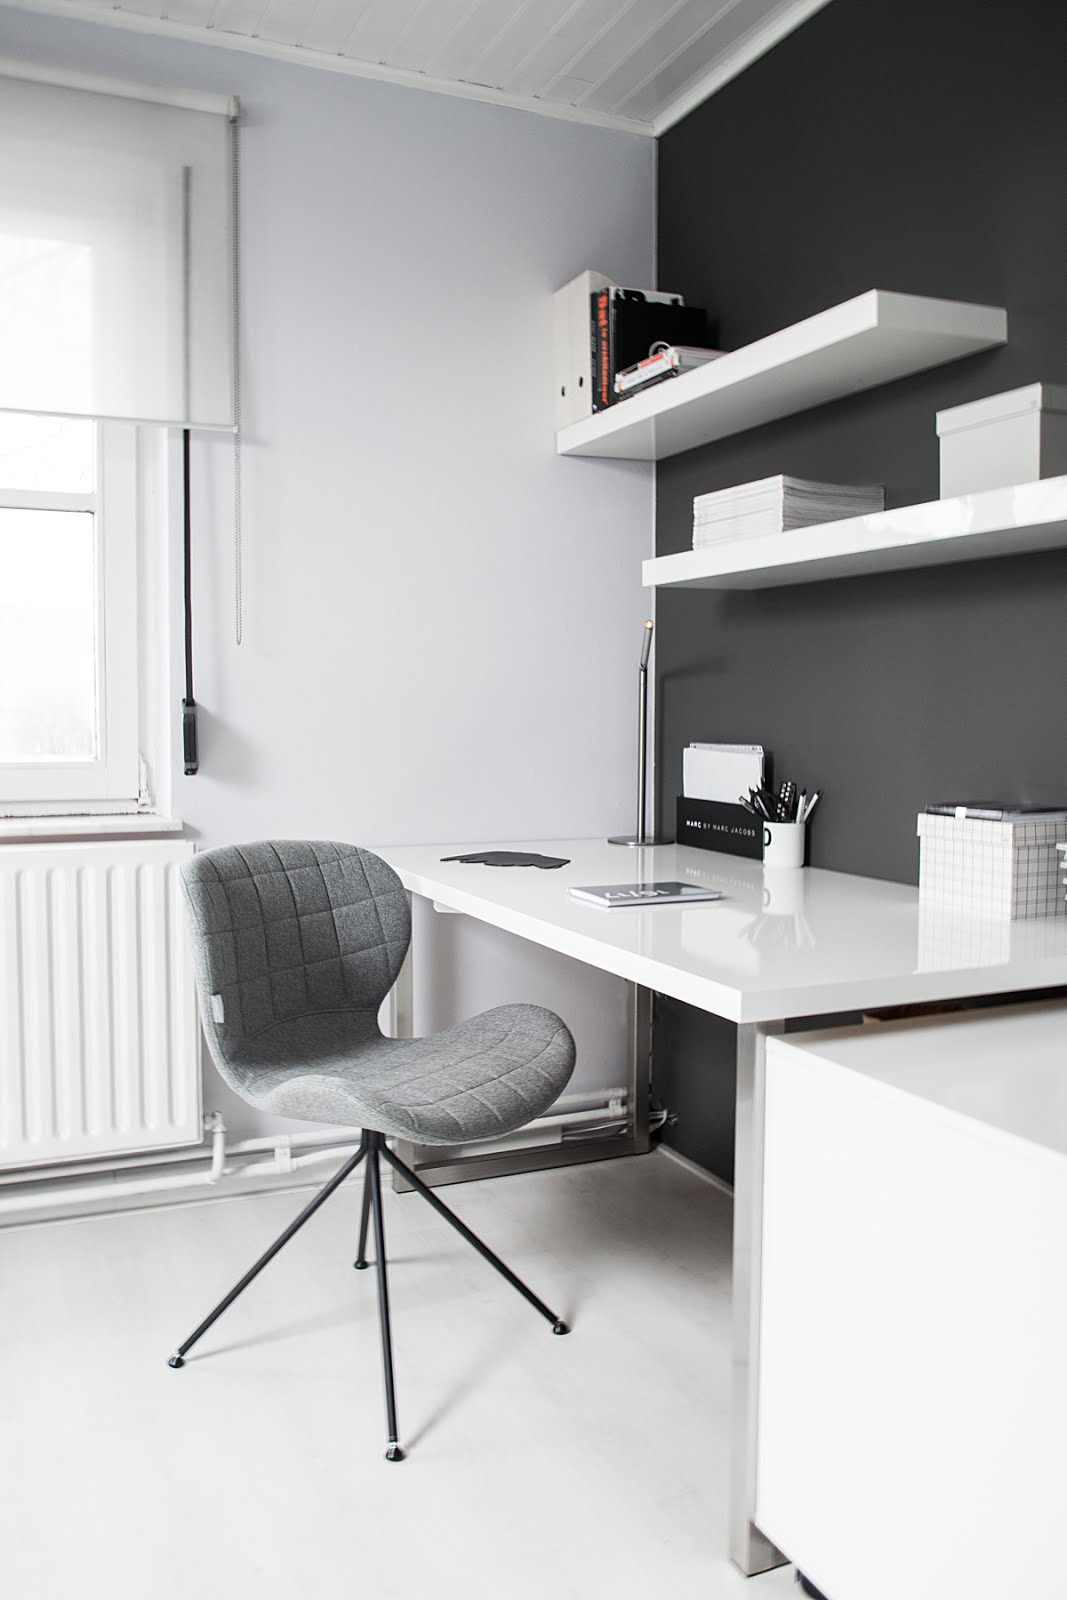 Zuiver, omg chair, minster design, minimal interior, black white, interior design, vitra, elephant mouse pad, ikea lack